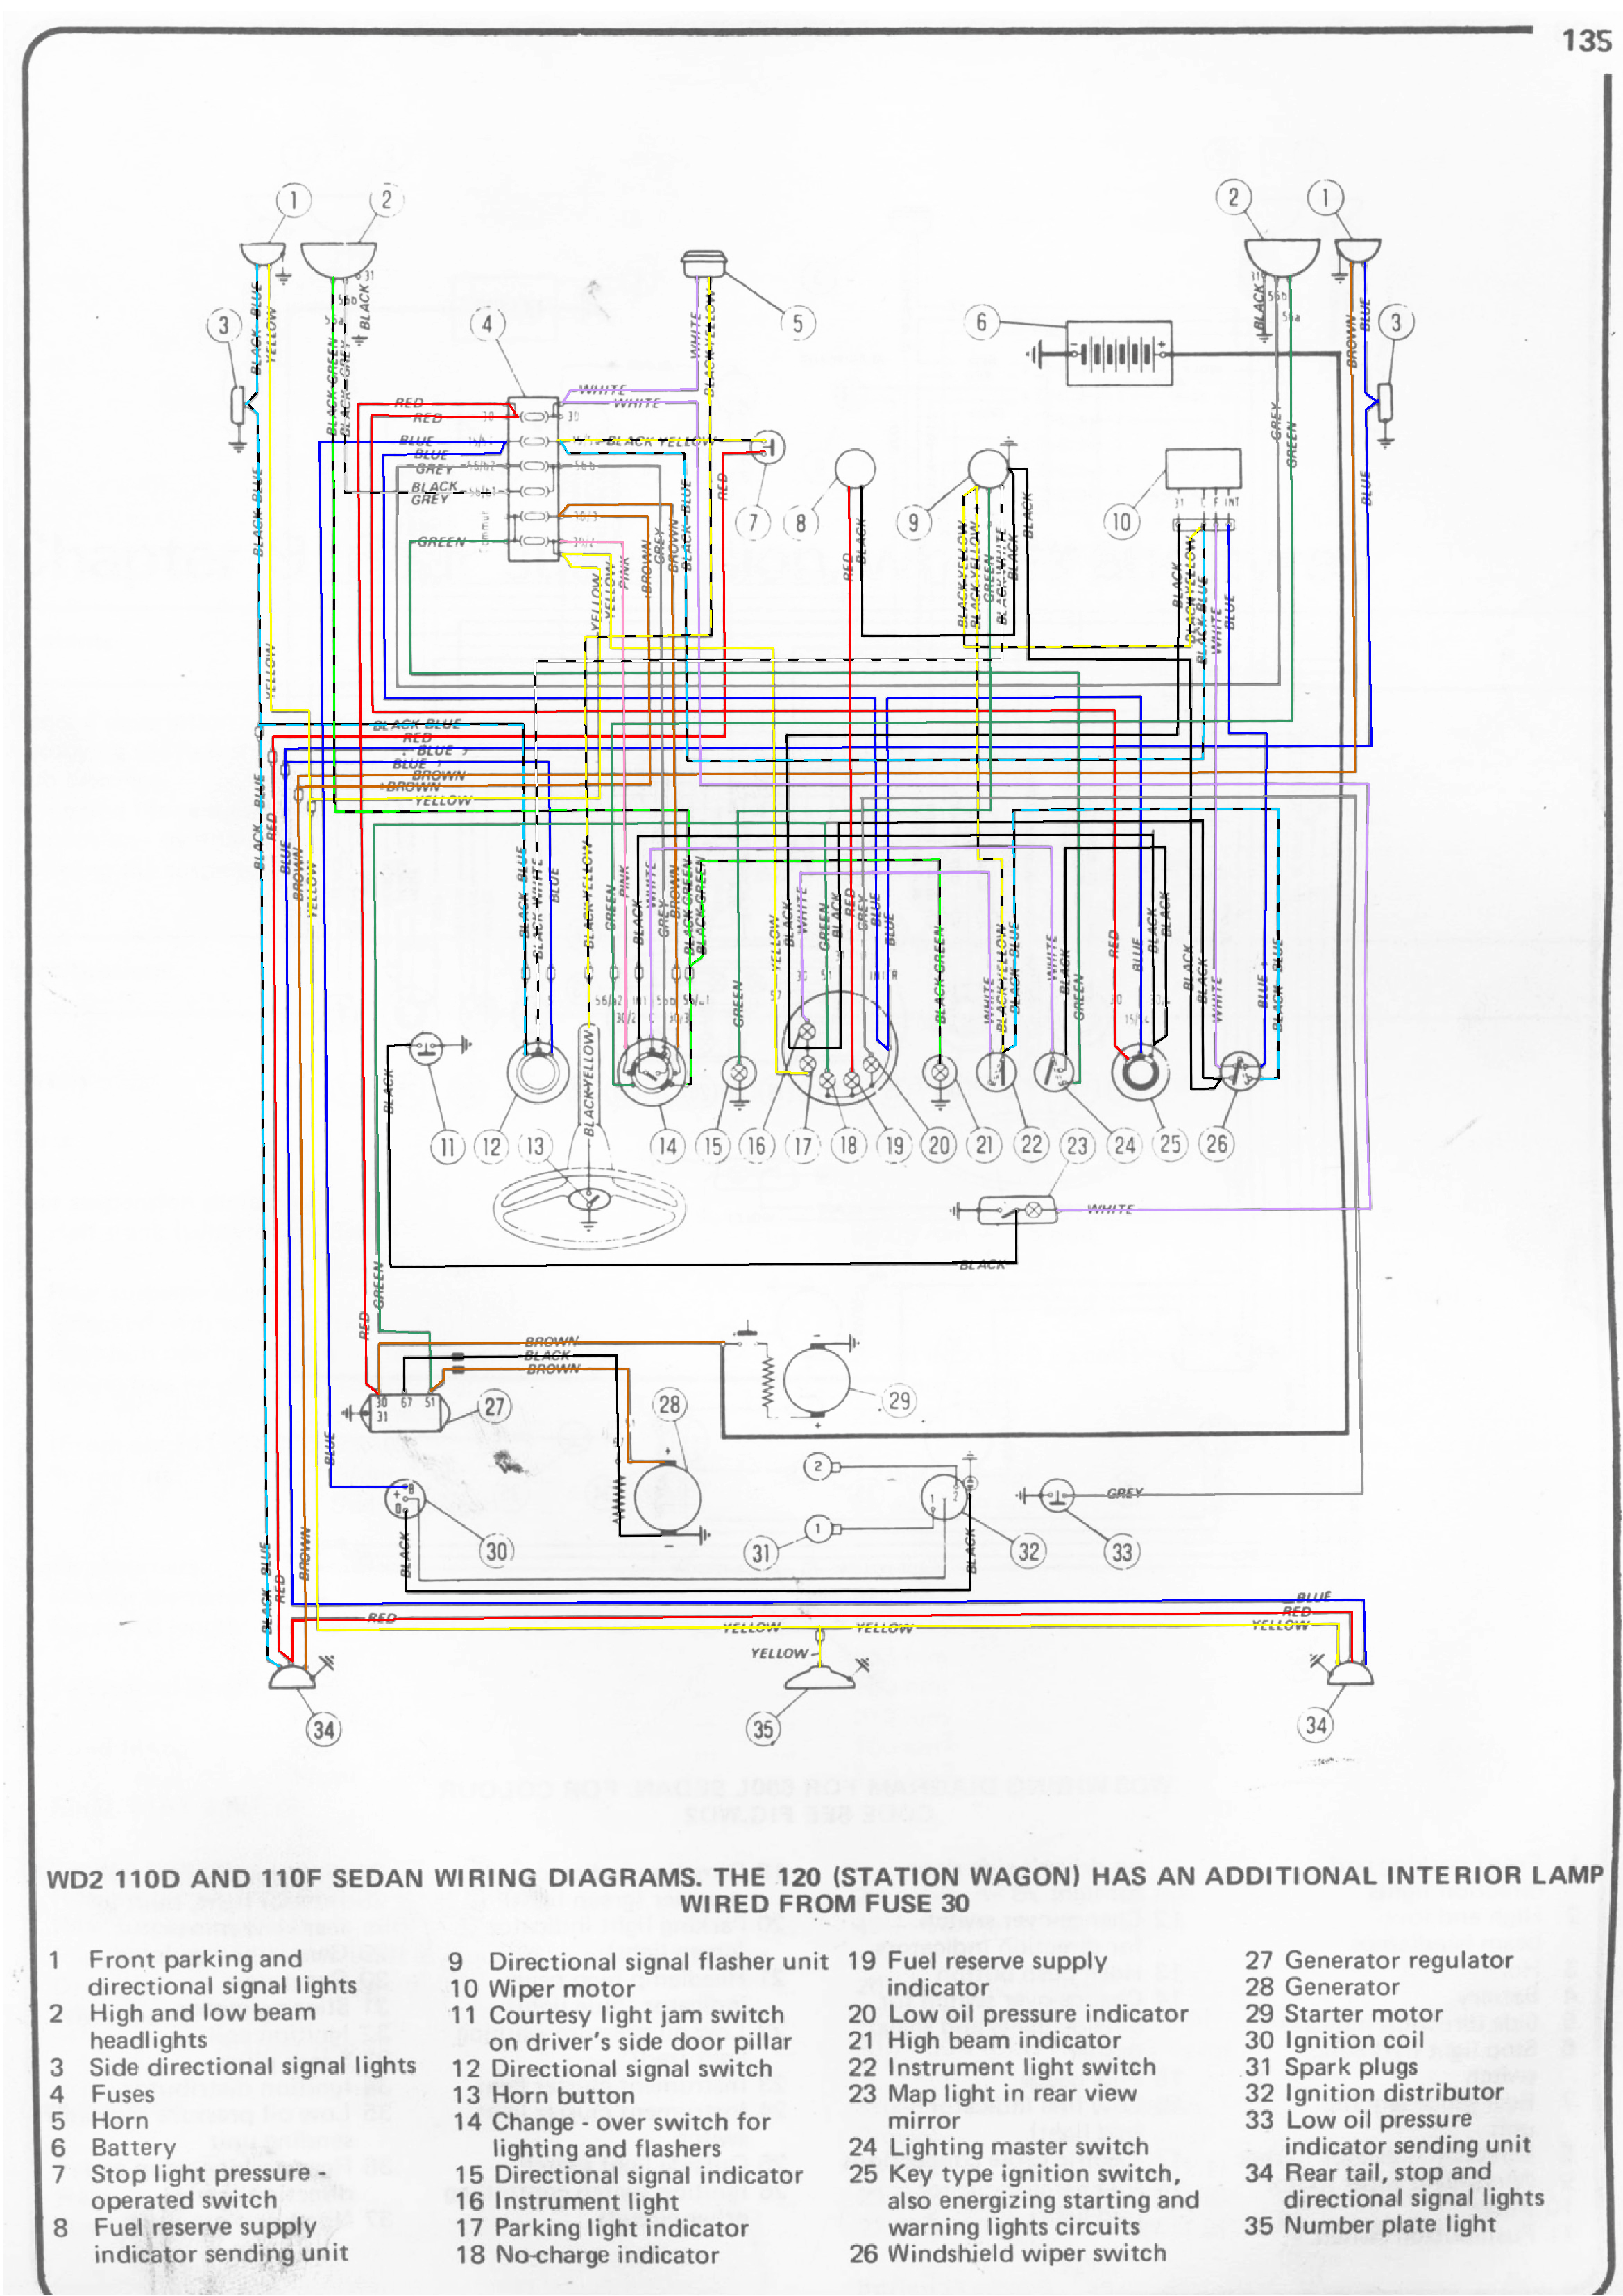 Fiat Wiring Diagrams Manual Guide Diagram Ducato 500l Harness 500 Ferrari Edition Punto